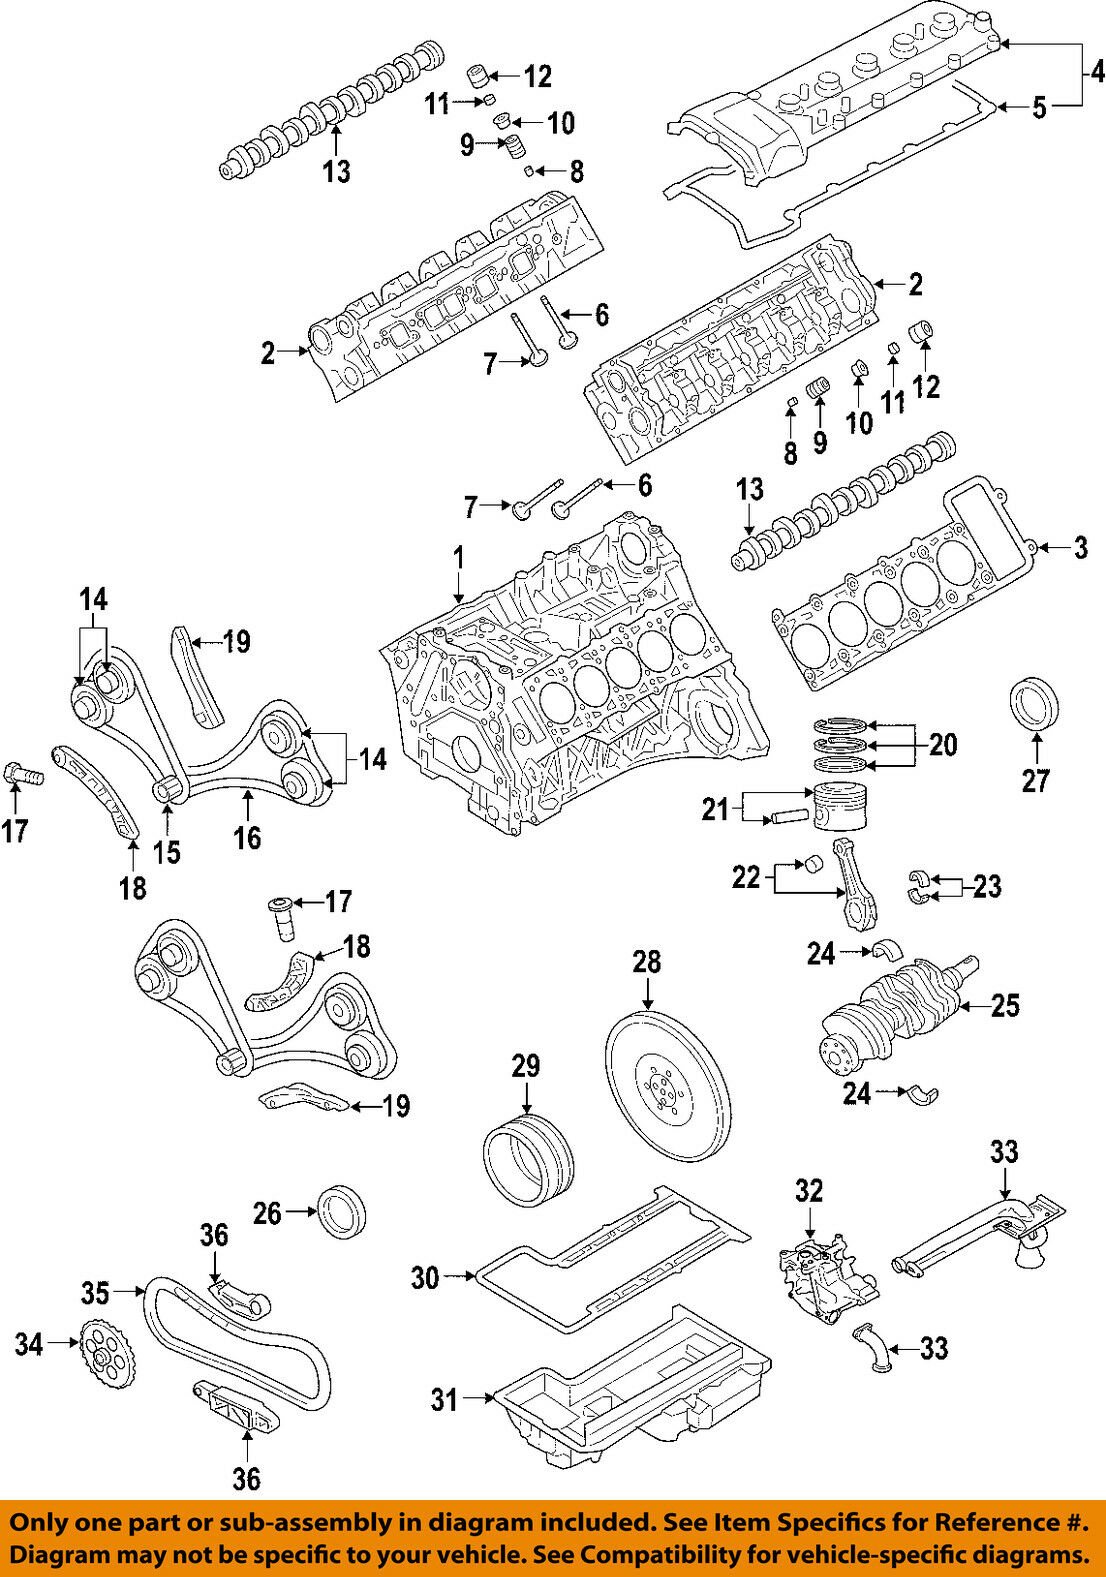 bmw s85 engine diagram experts of wiring diagram u2022 rh evilcloud co uk BMW S65 Engine BMW S65 Engine